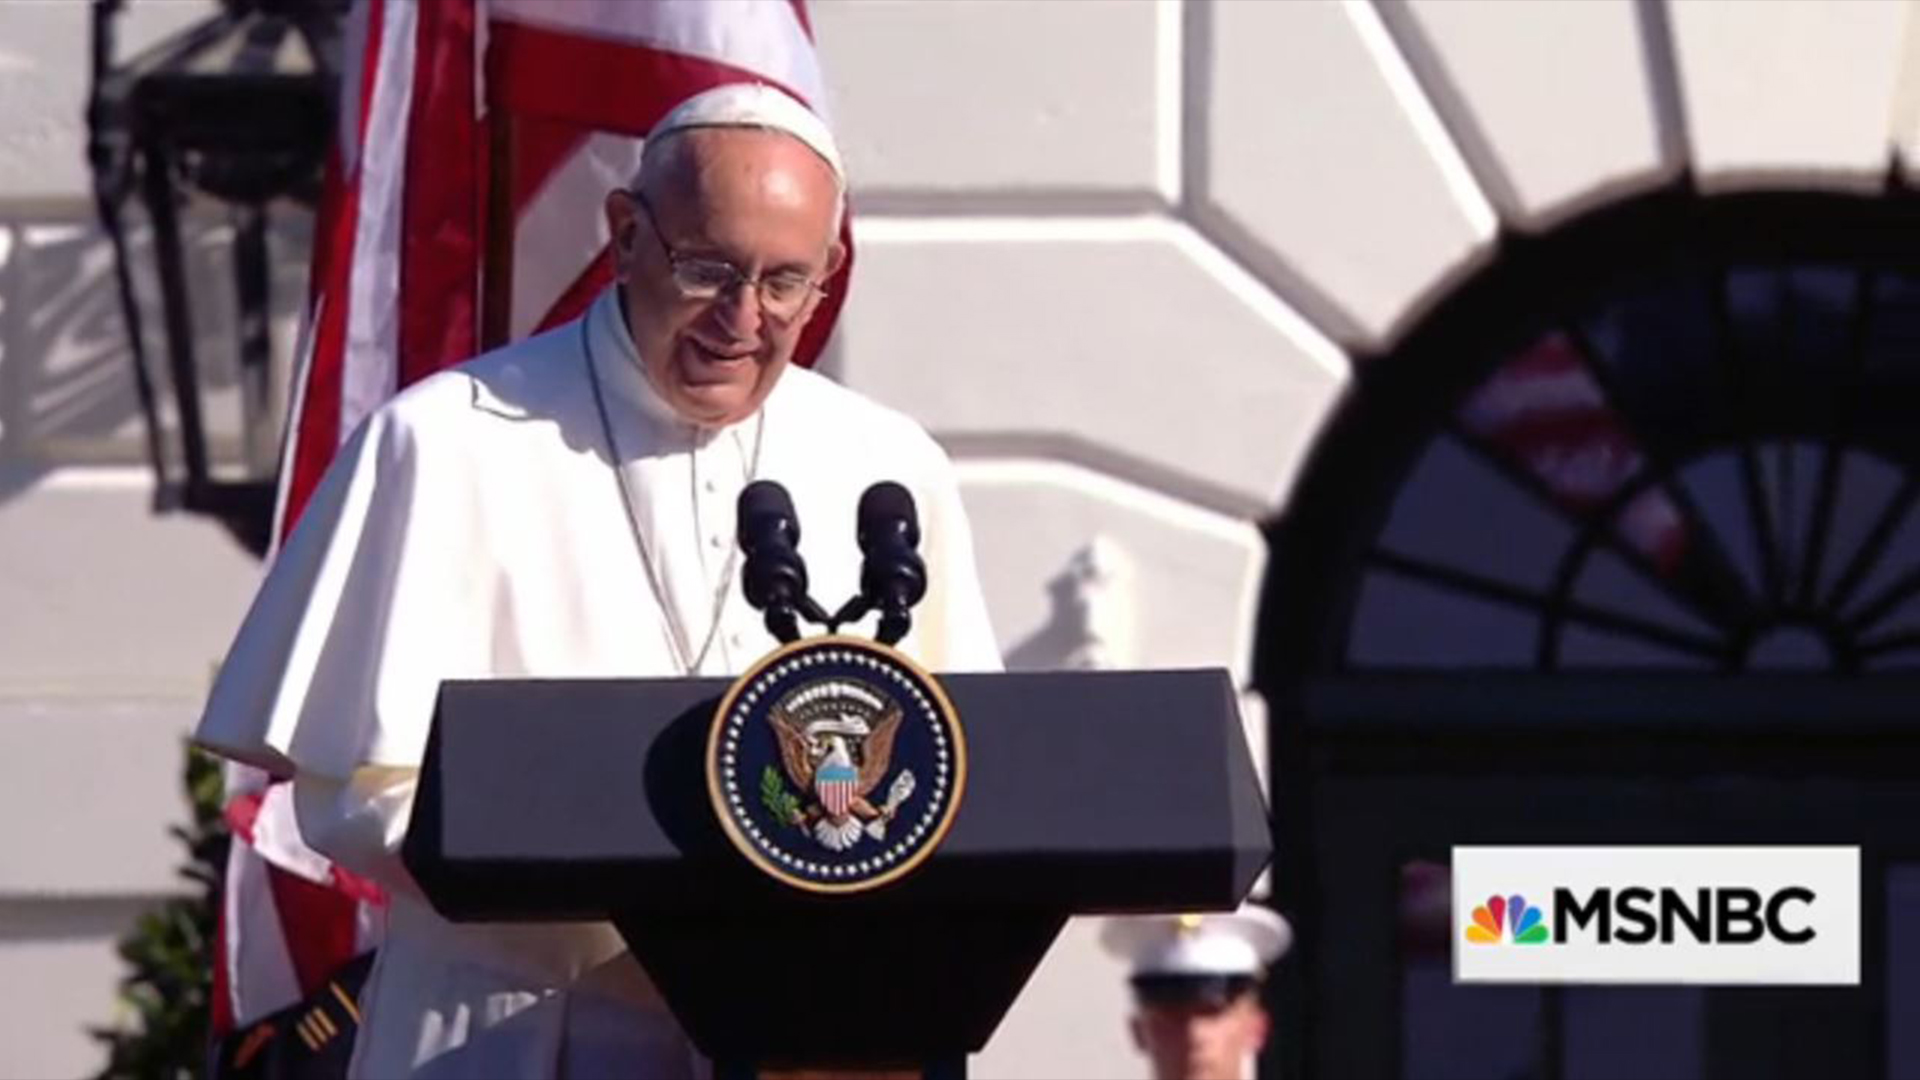 Pope speaks out on immigration, climate...